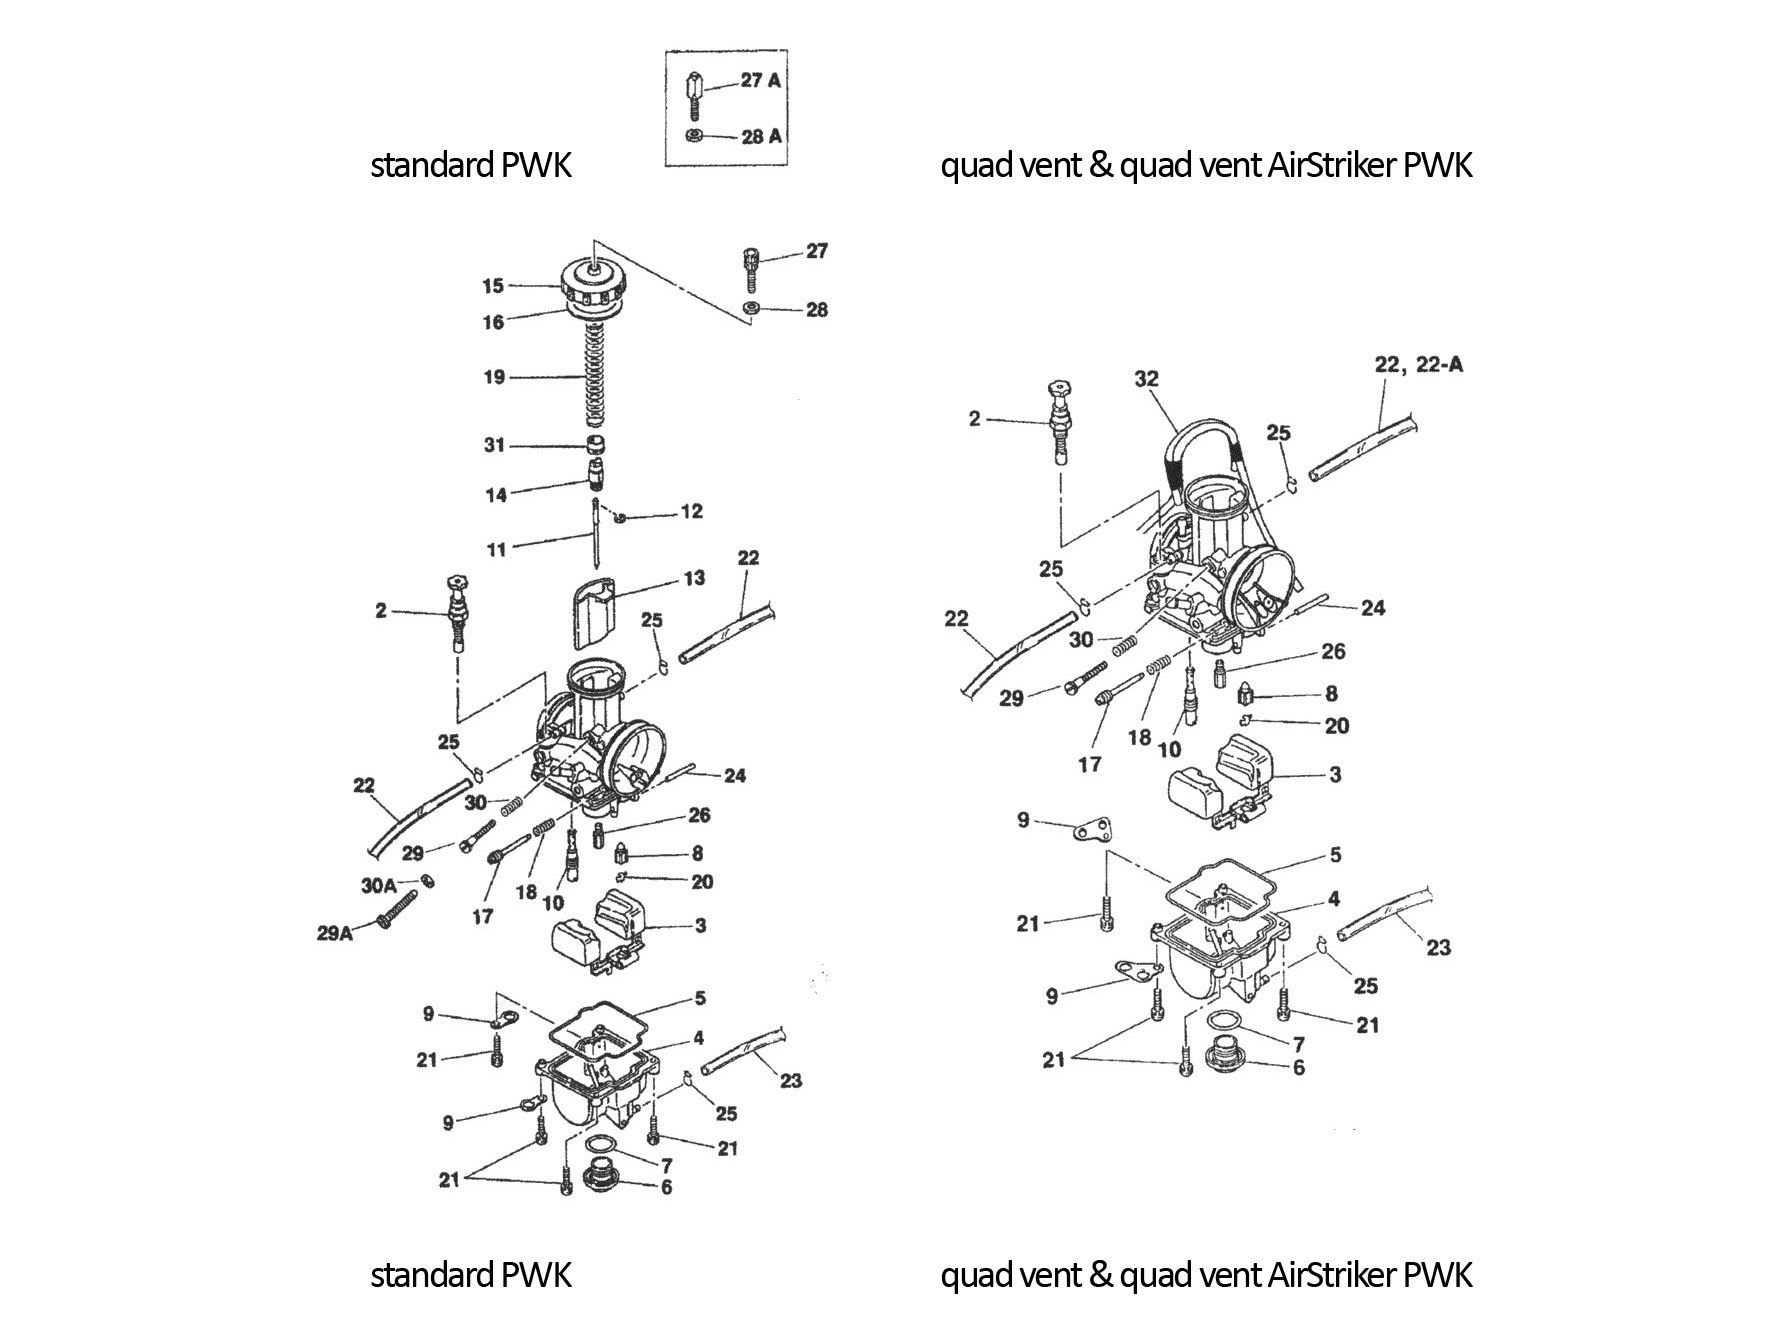 keihin pwk carburetor parts diagram